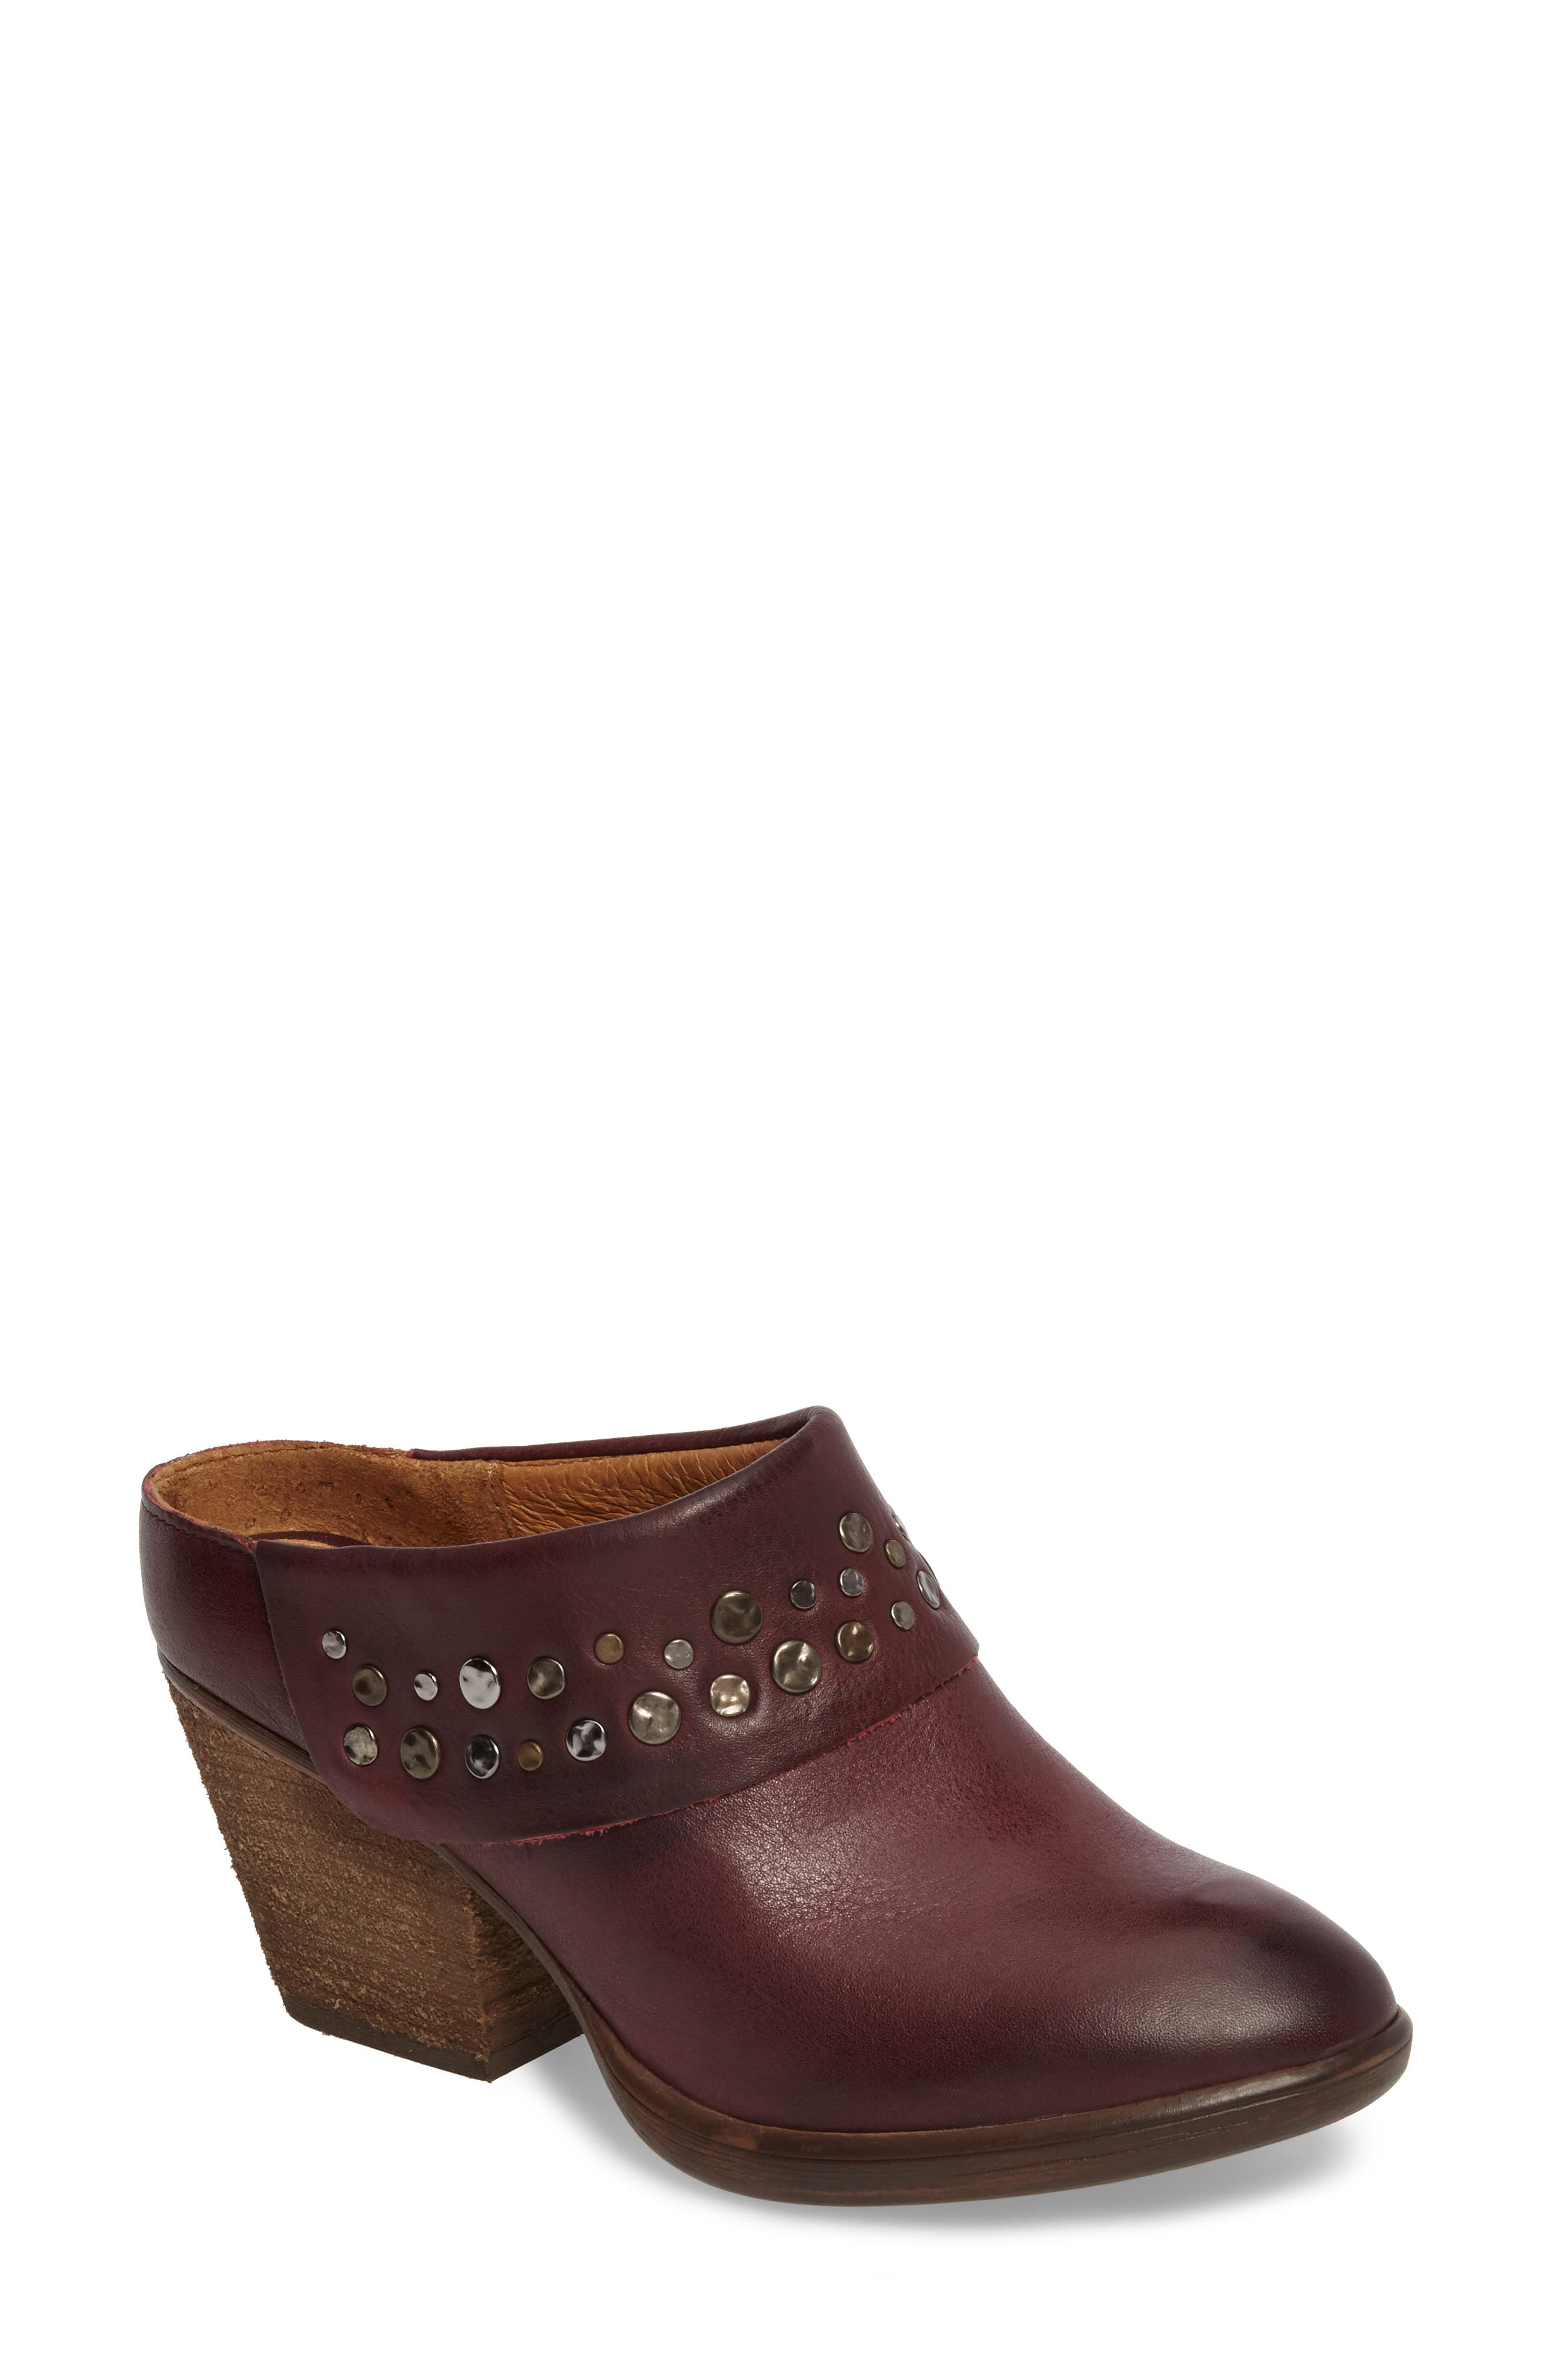 SÖFFT Gila Studded Mule, Main, color, MARSALA RED LEATHER